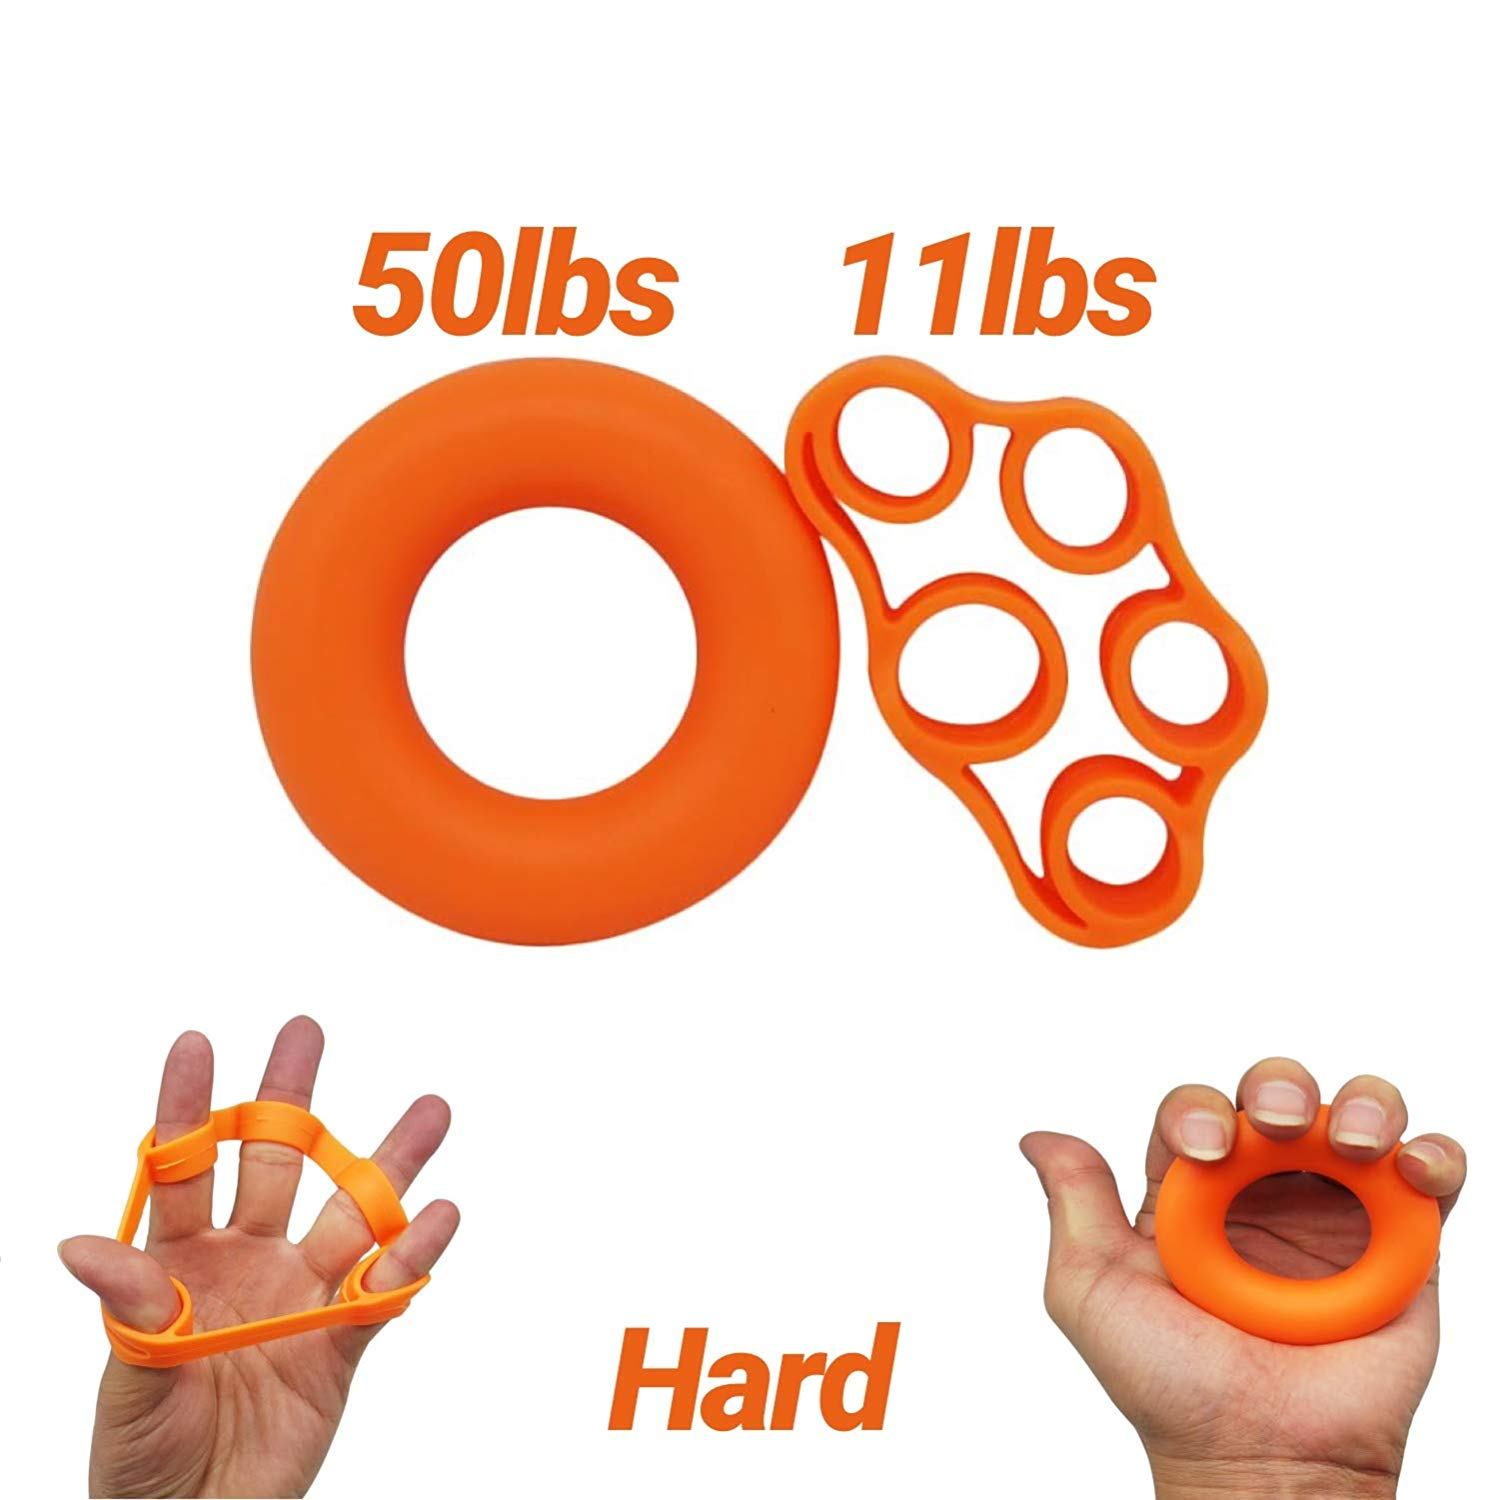 Diamond Finger Stretcher & Hand Grip Strengthener - 6 or 2 Pack - Strengthens Fingers, Hands, Wrists and Forearms - Best for Climbing, Golf & Tennis Grip Power, Hand Therapy